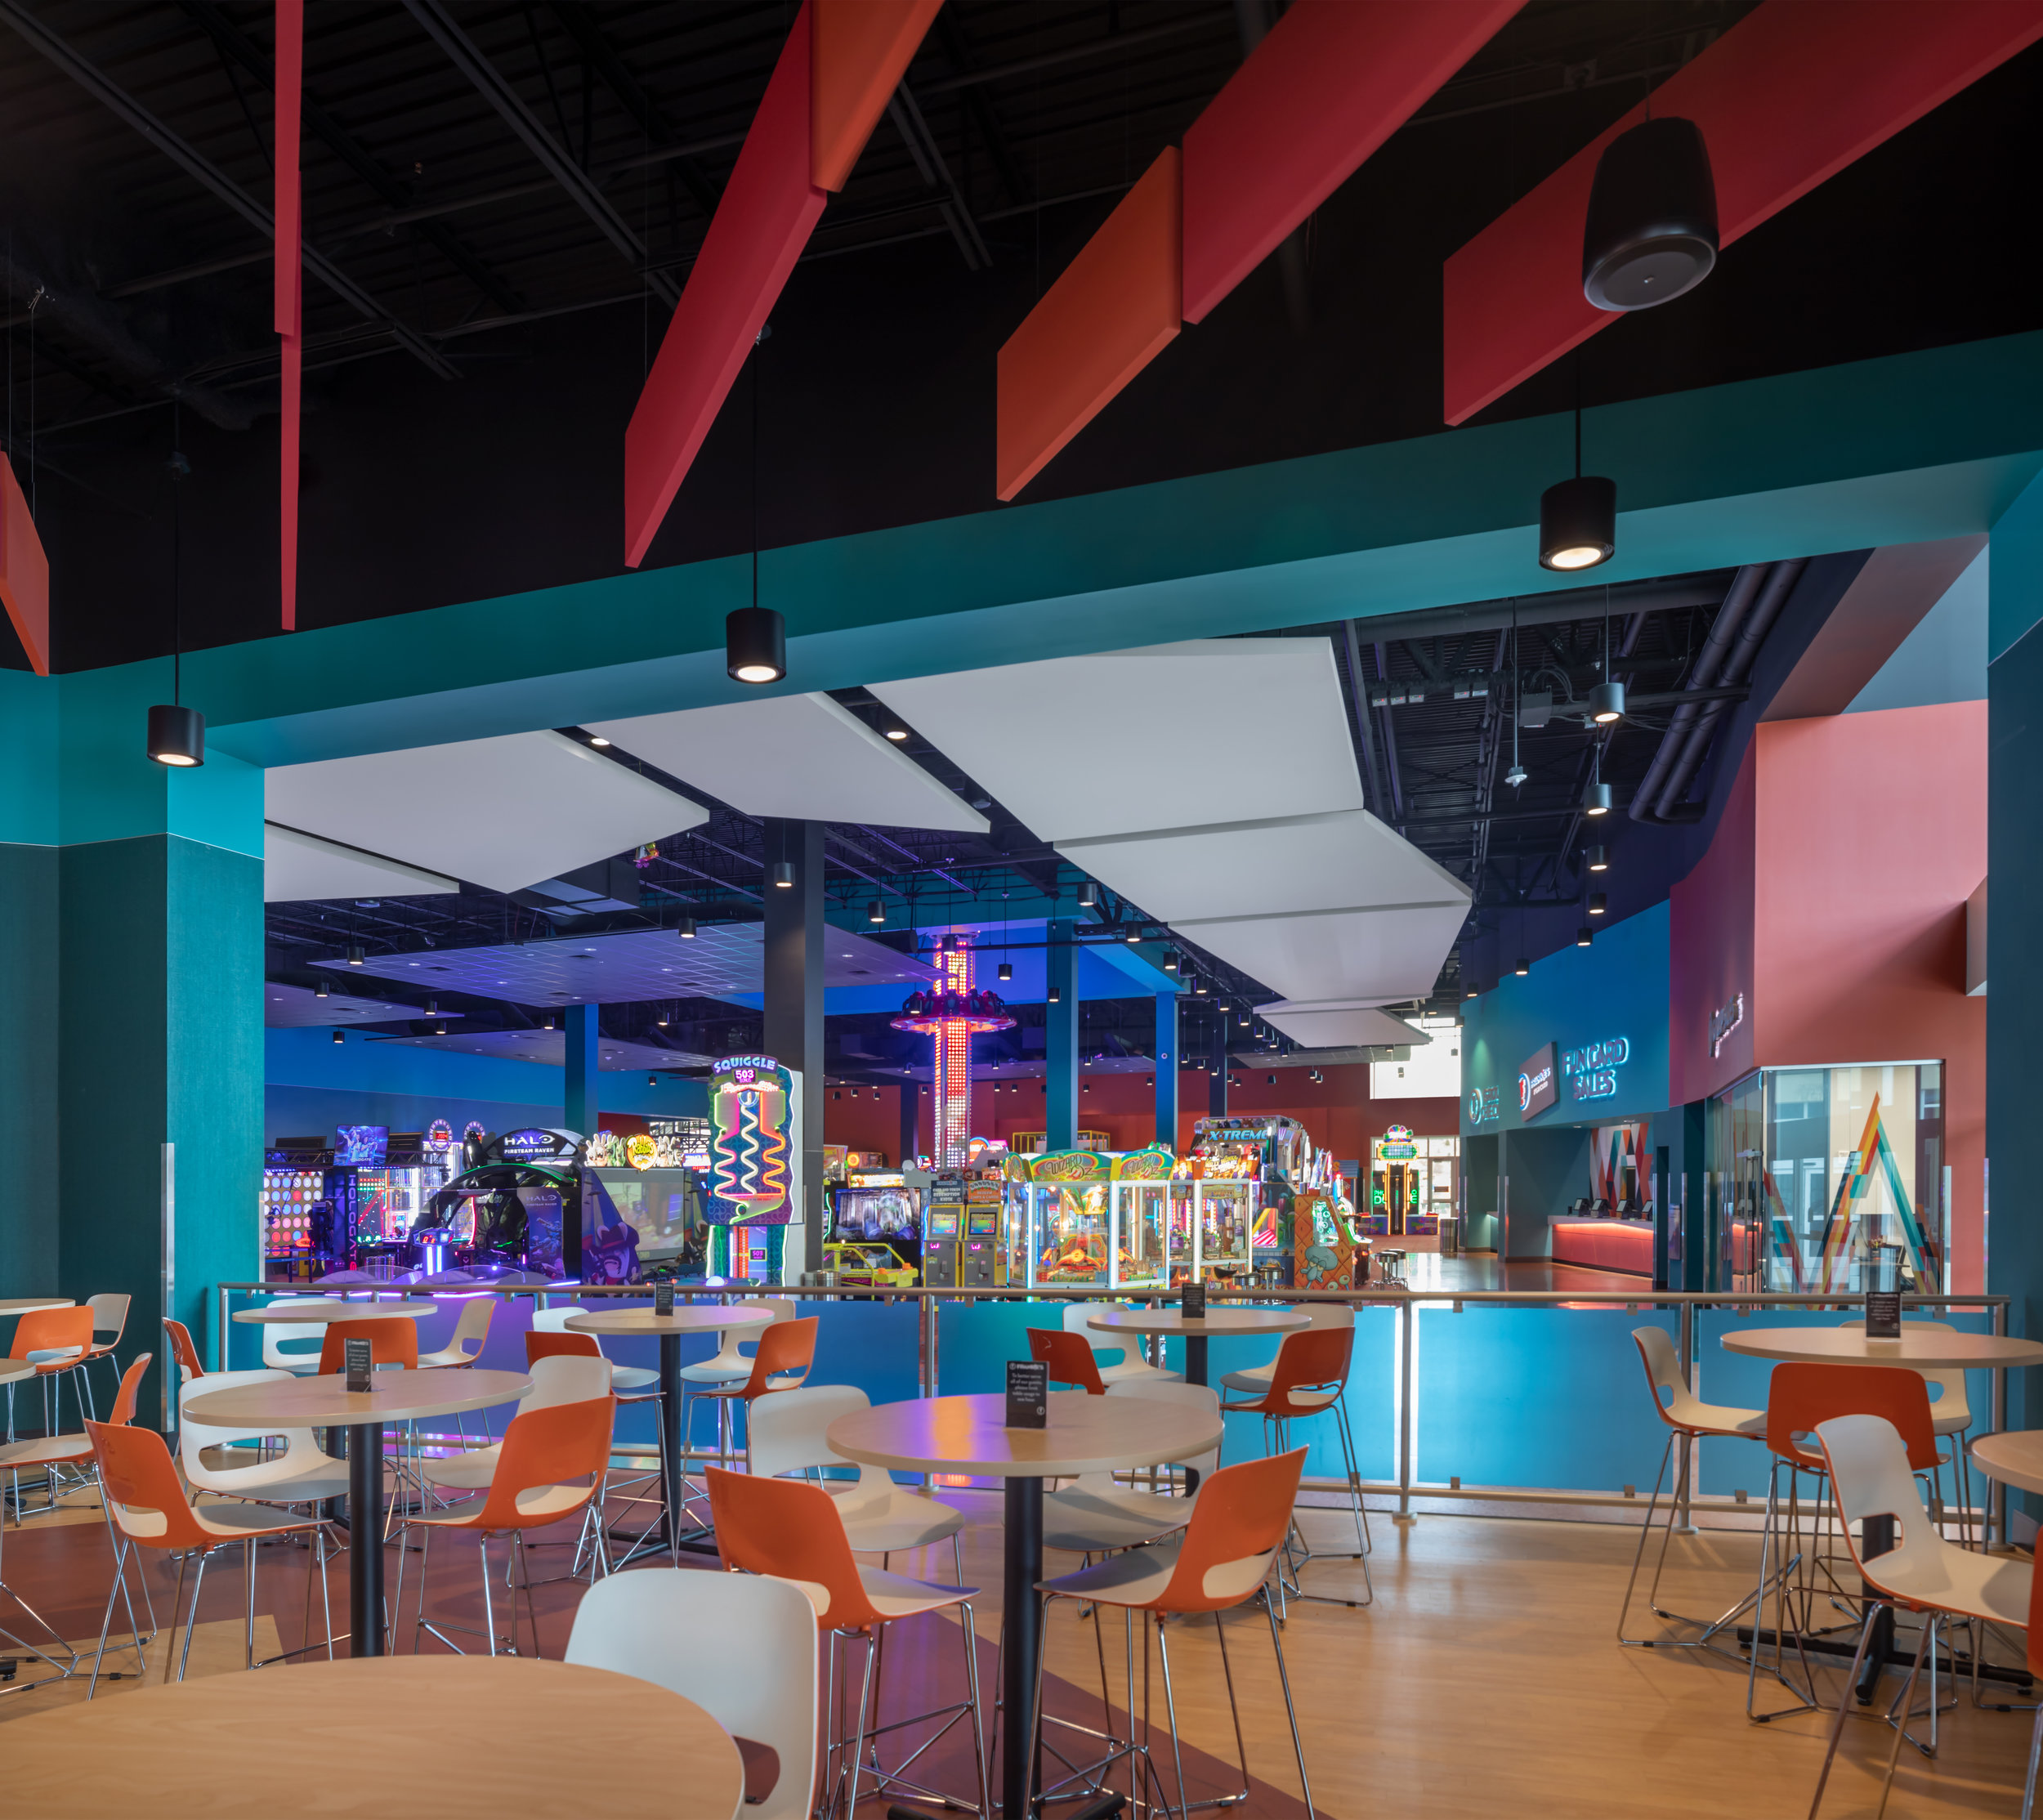 ADW-Entertainment-Frankie's-Fun-Park-Huntersville-NC-Interior-Raised Dining.jpg